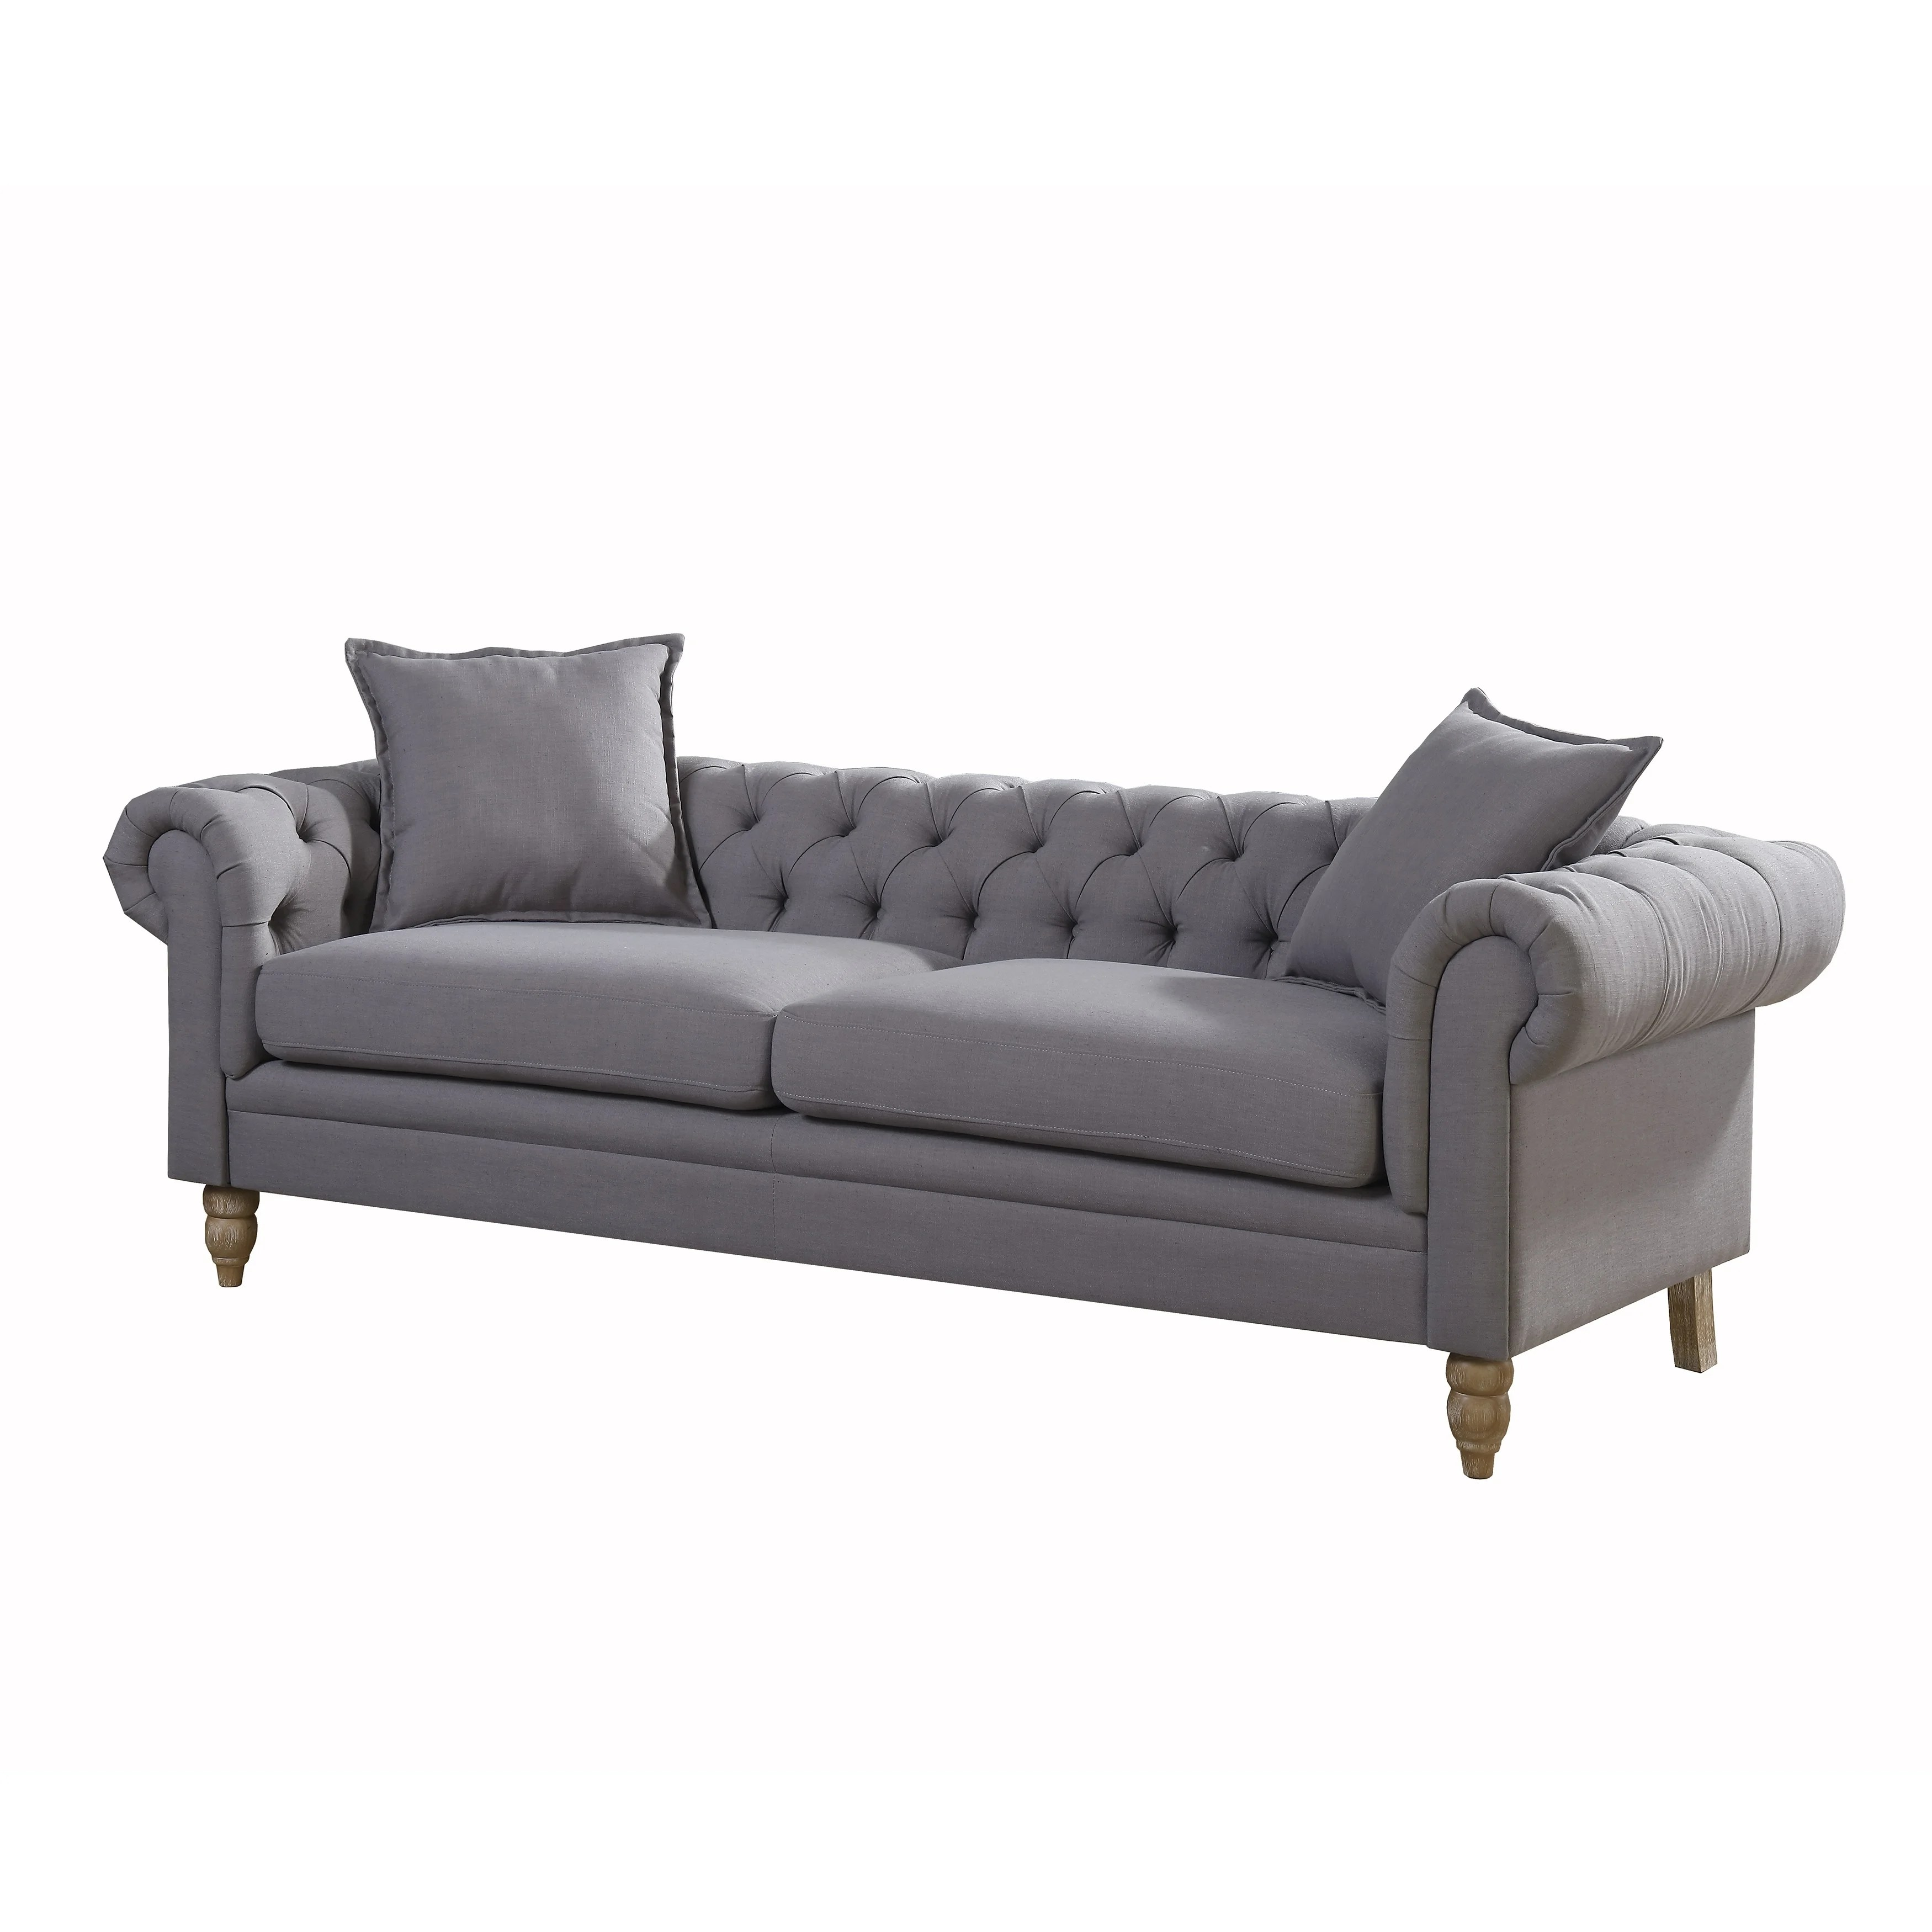 chesterfield style fabric sofa flexsteel harrison shop christies home living juliet small linen grey free shipping on orders over 45 overstock com 17625161